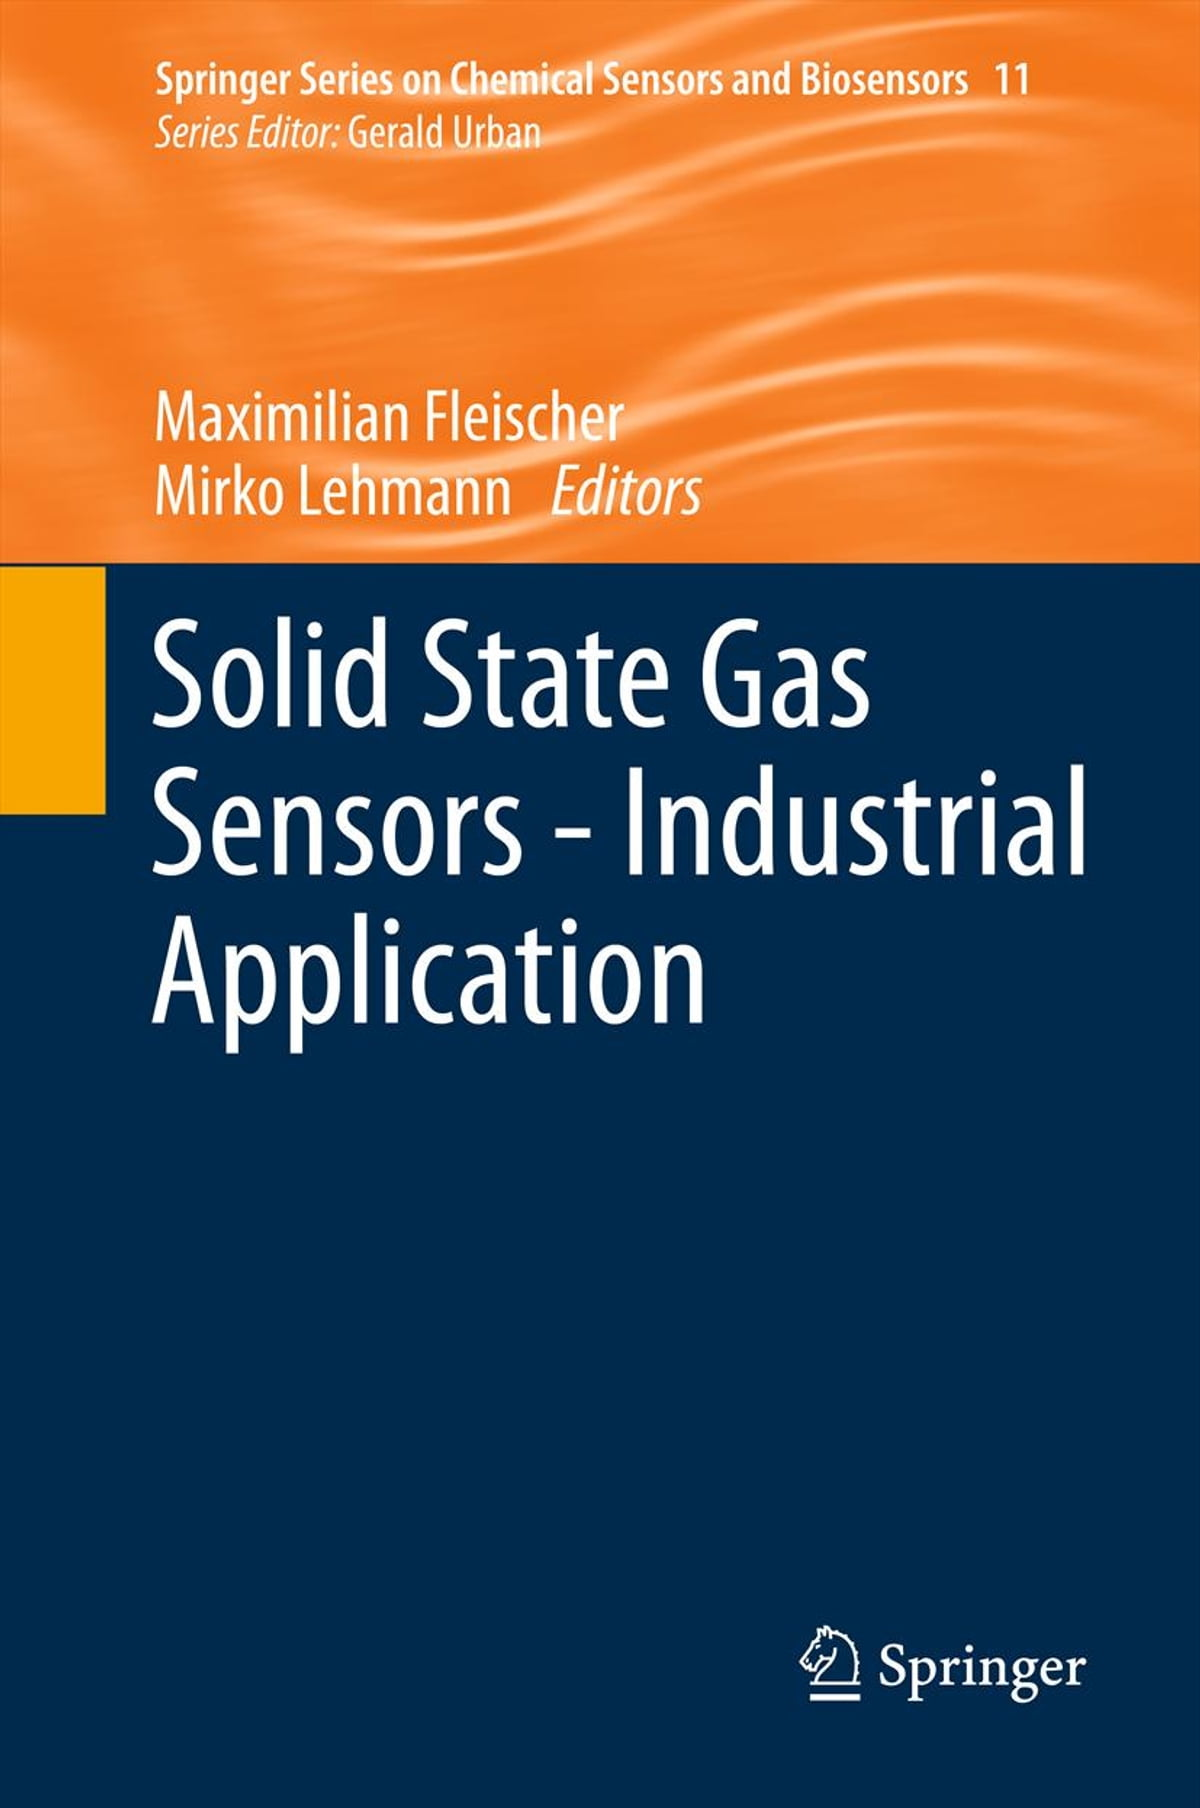 Solid State Gas Sensors - Industrial Application eBook by - 9783642280931 |  Rakuten Kobo